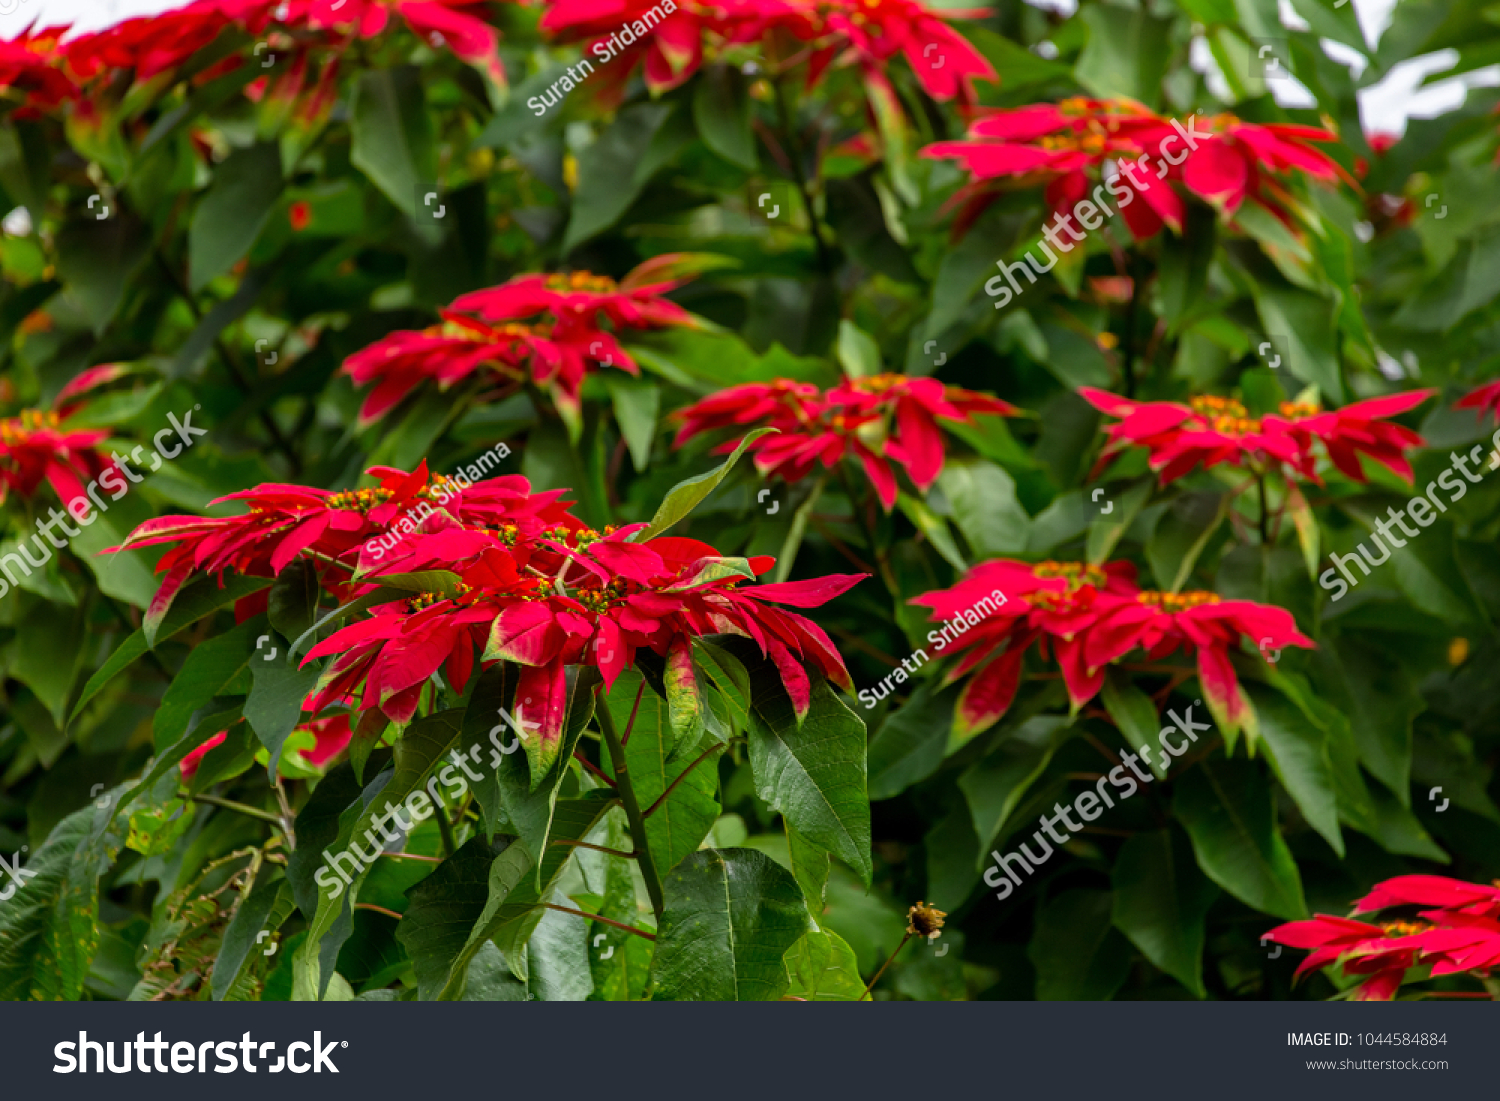 People Think That Red Color Flowers Stock Photo (Royalty Free ...